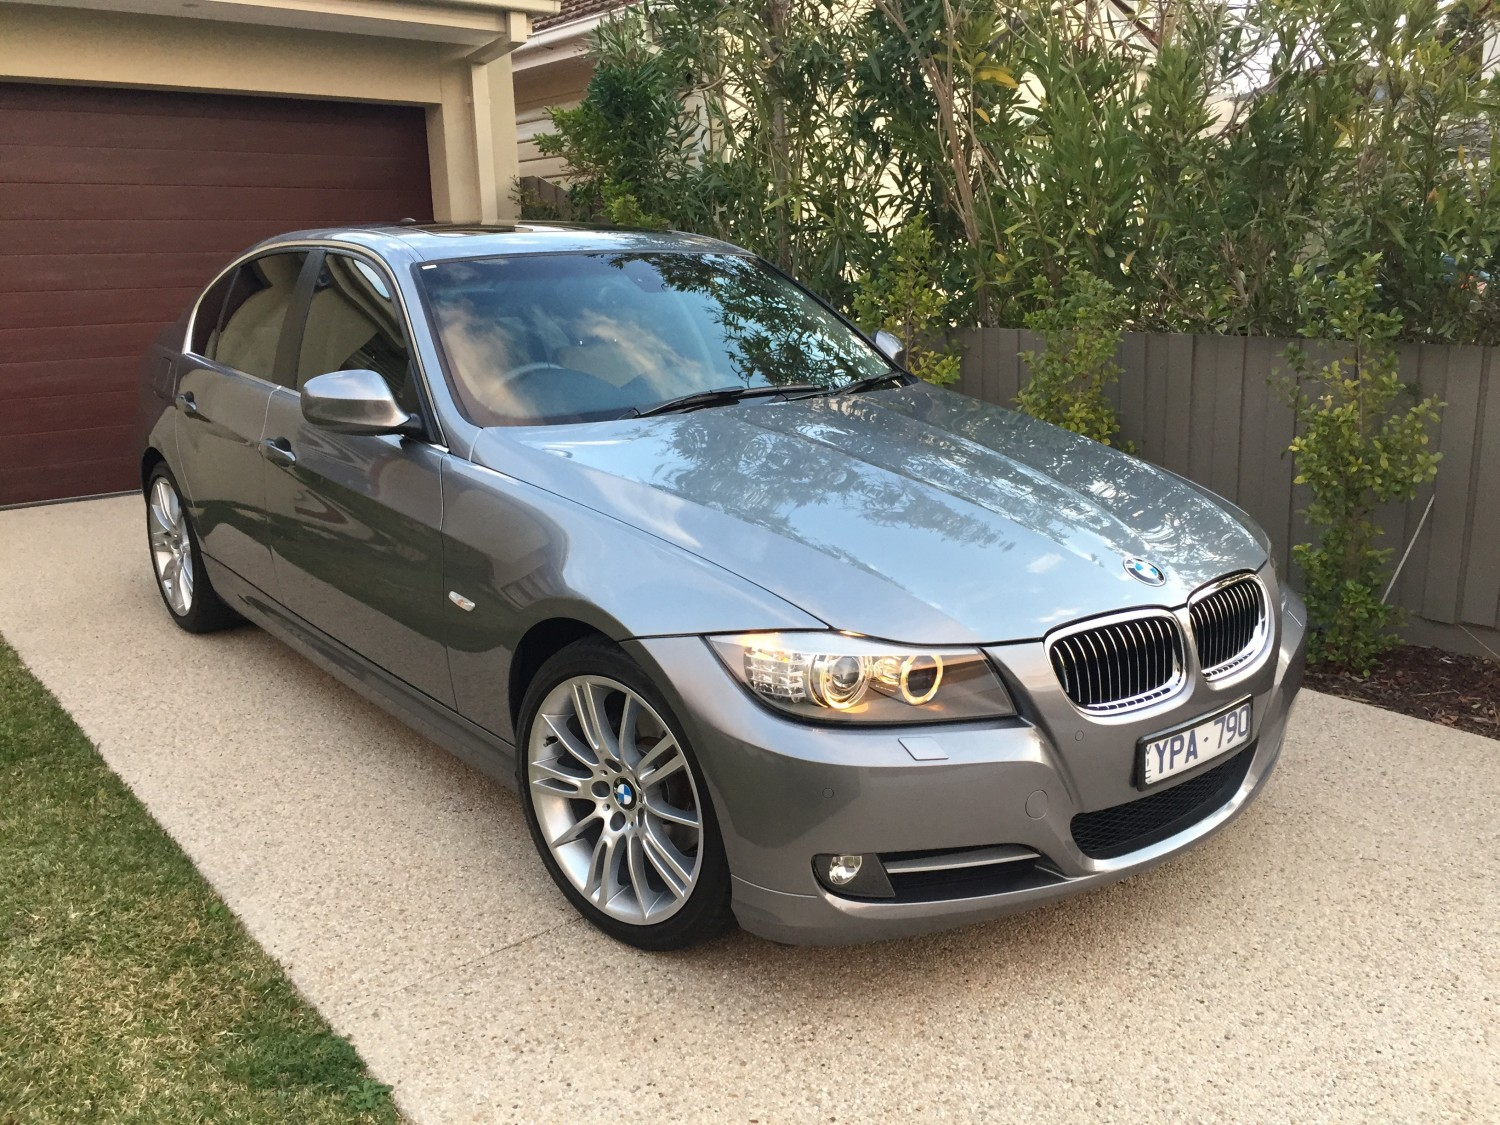 During the quote, you'll learn about. 2011 BMW 320i EXECUTIVE - Candice - Shannons Club